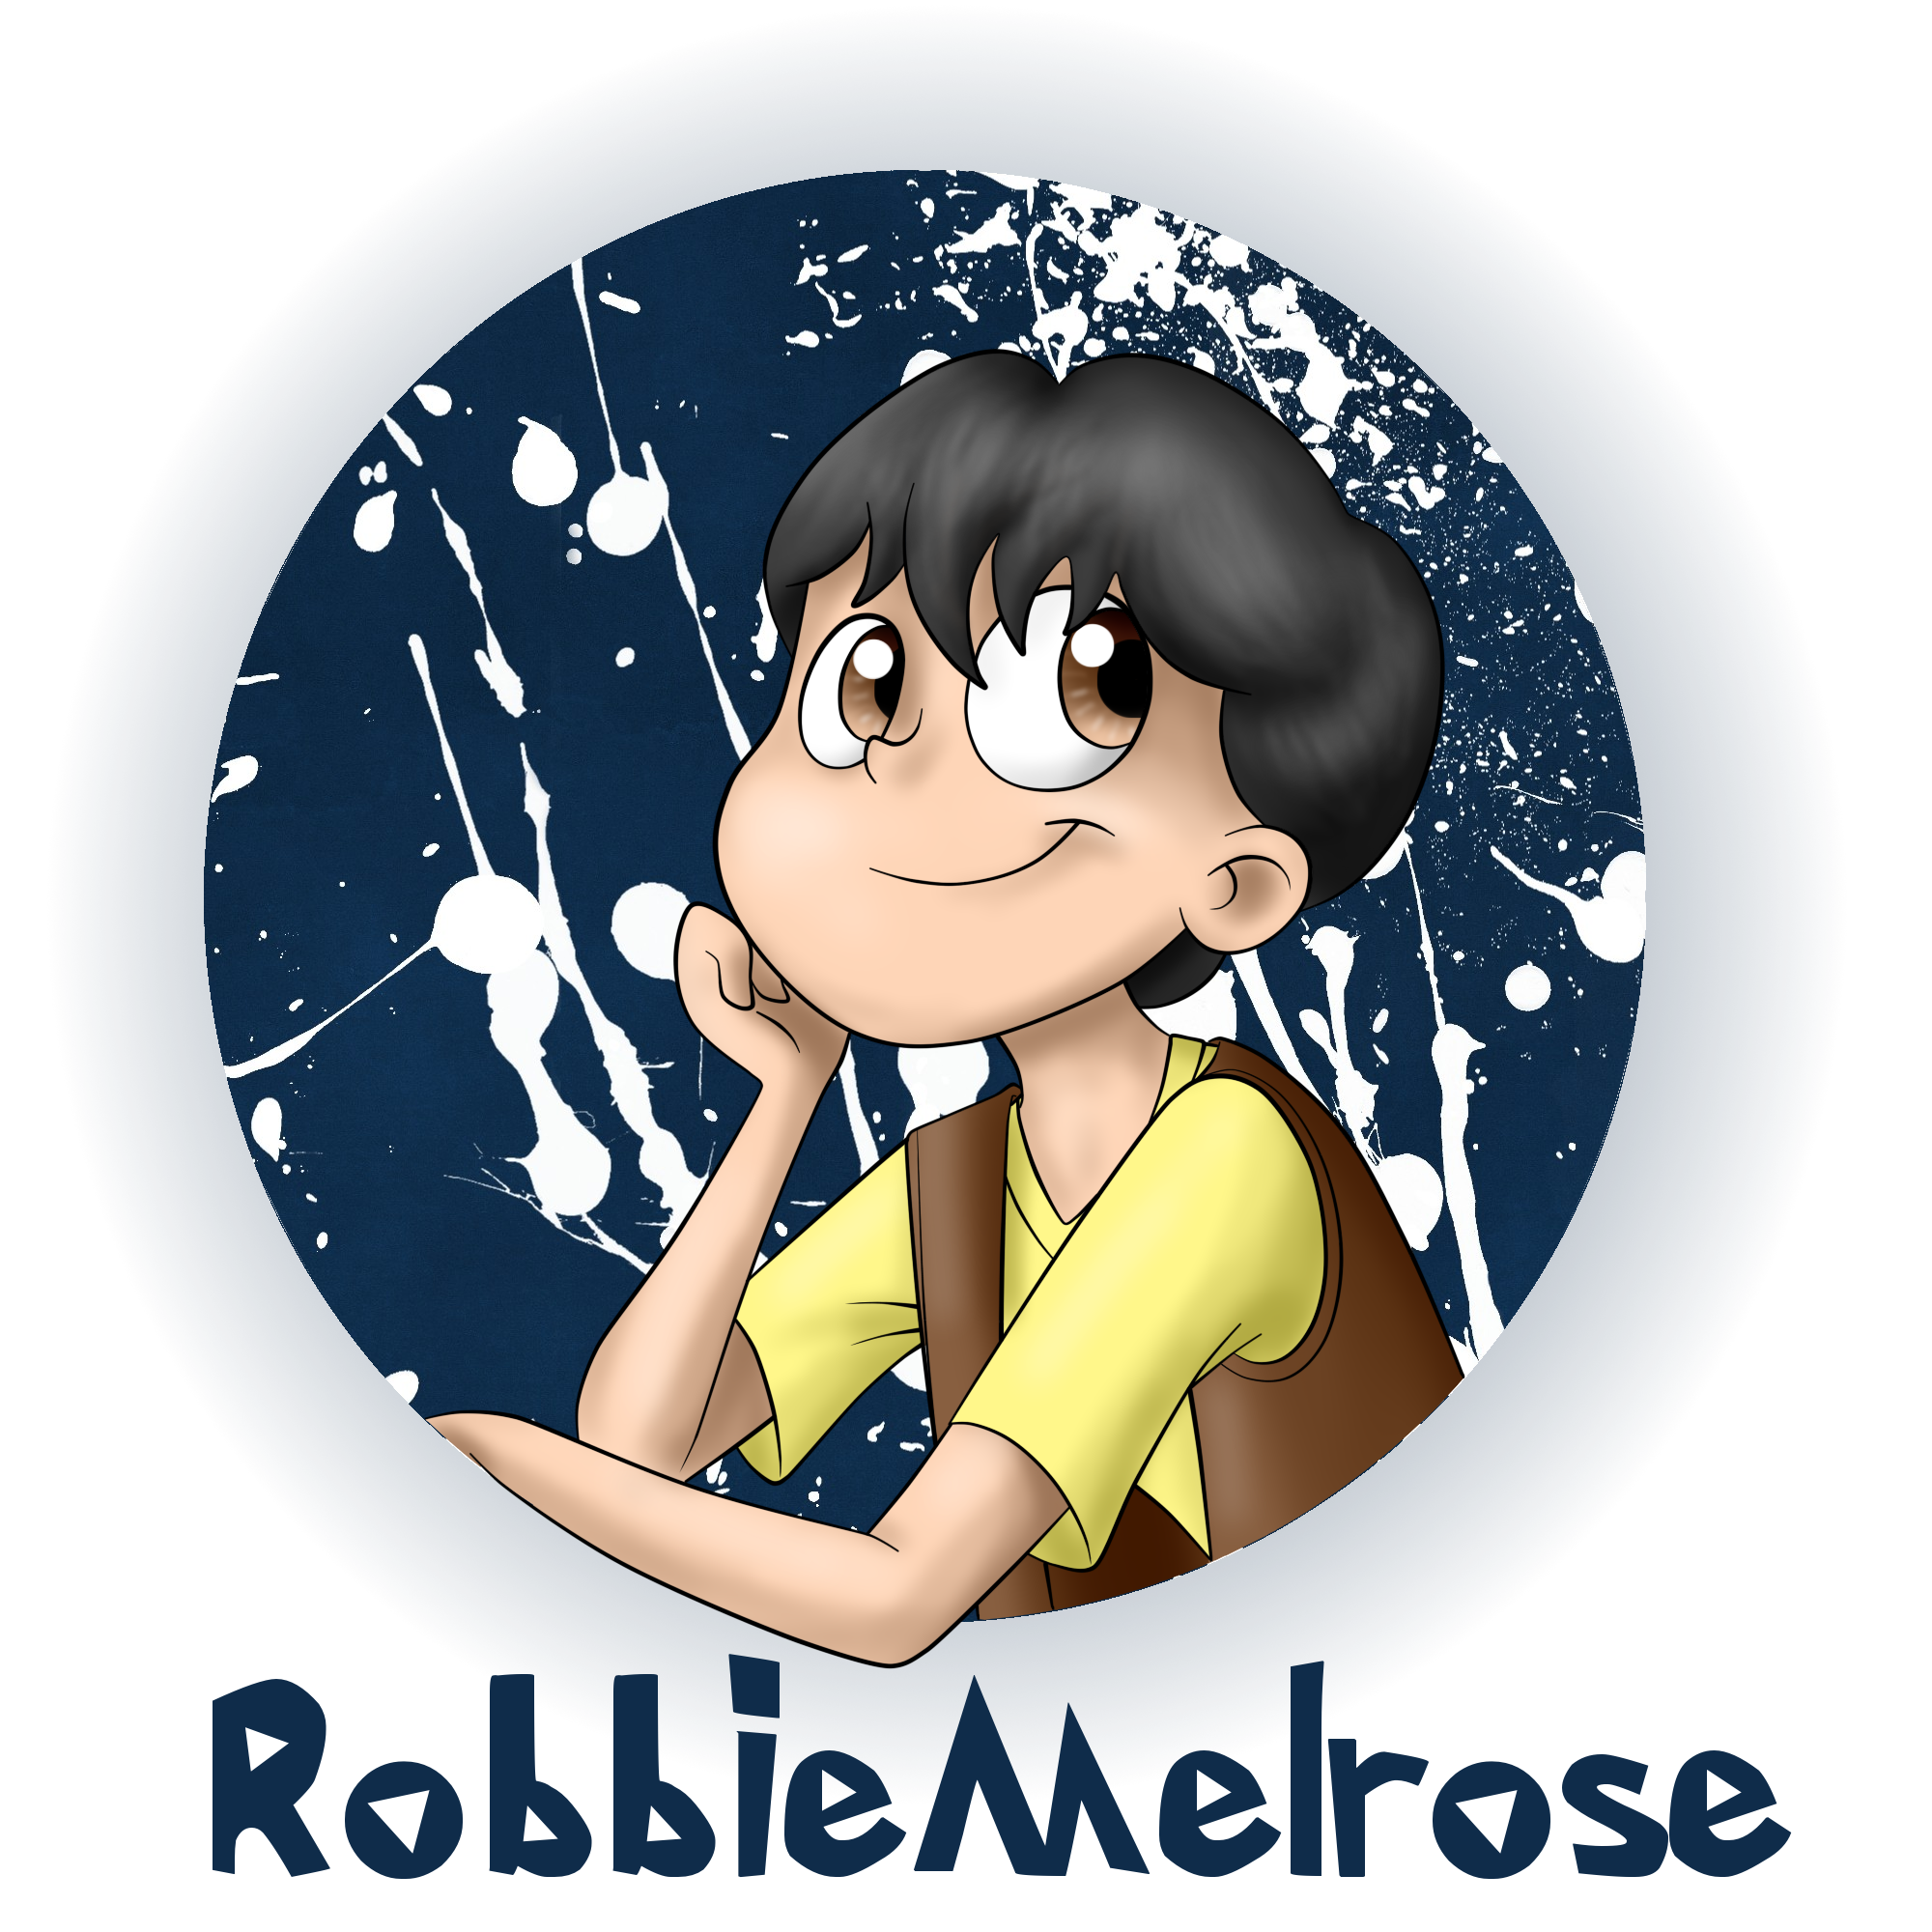 RobbieMelrose's Profile Picture